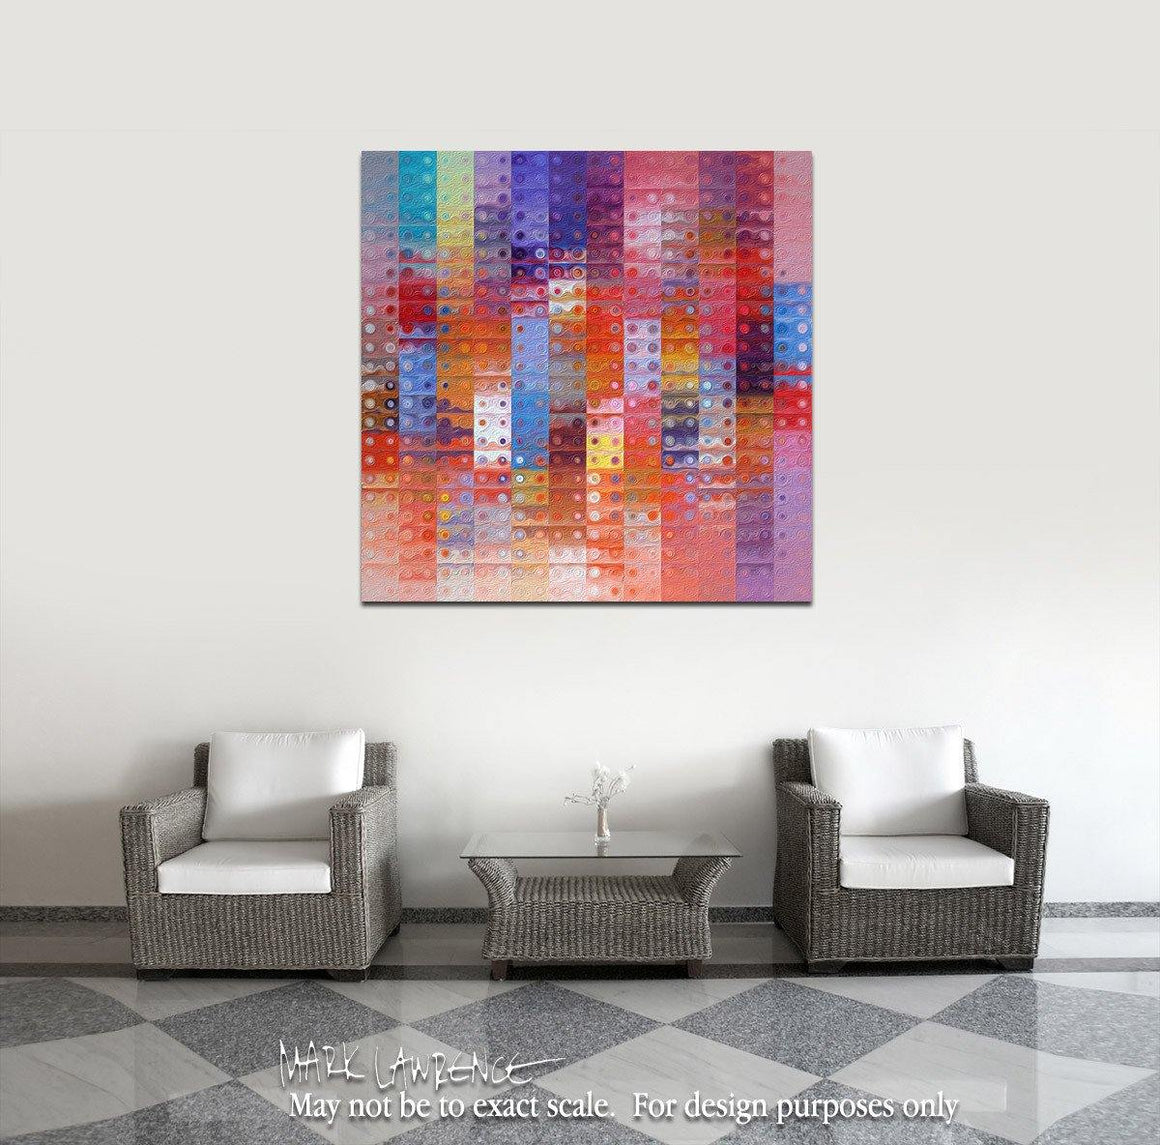 Interior Design Focal Art Inspiration-Circles & Squares #33. Exclusive Traditional Fine Art. Original limited edition signed canvas & paper giclees by internationally collected artist Mark Lawrence